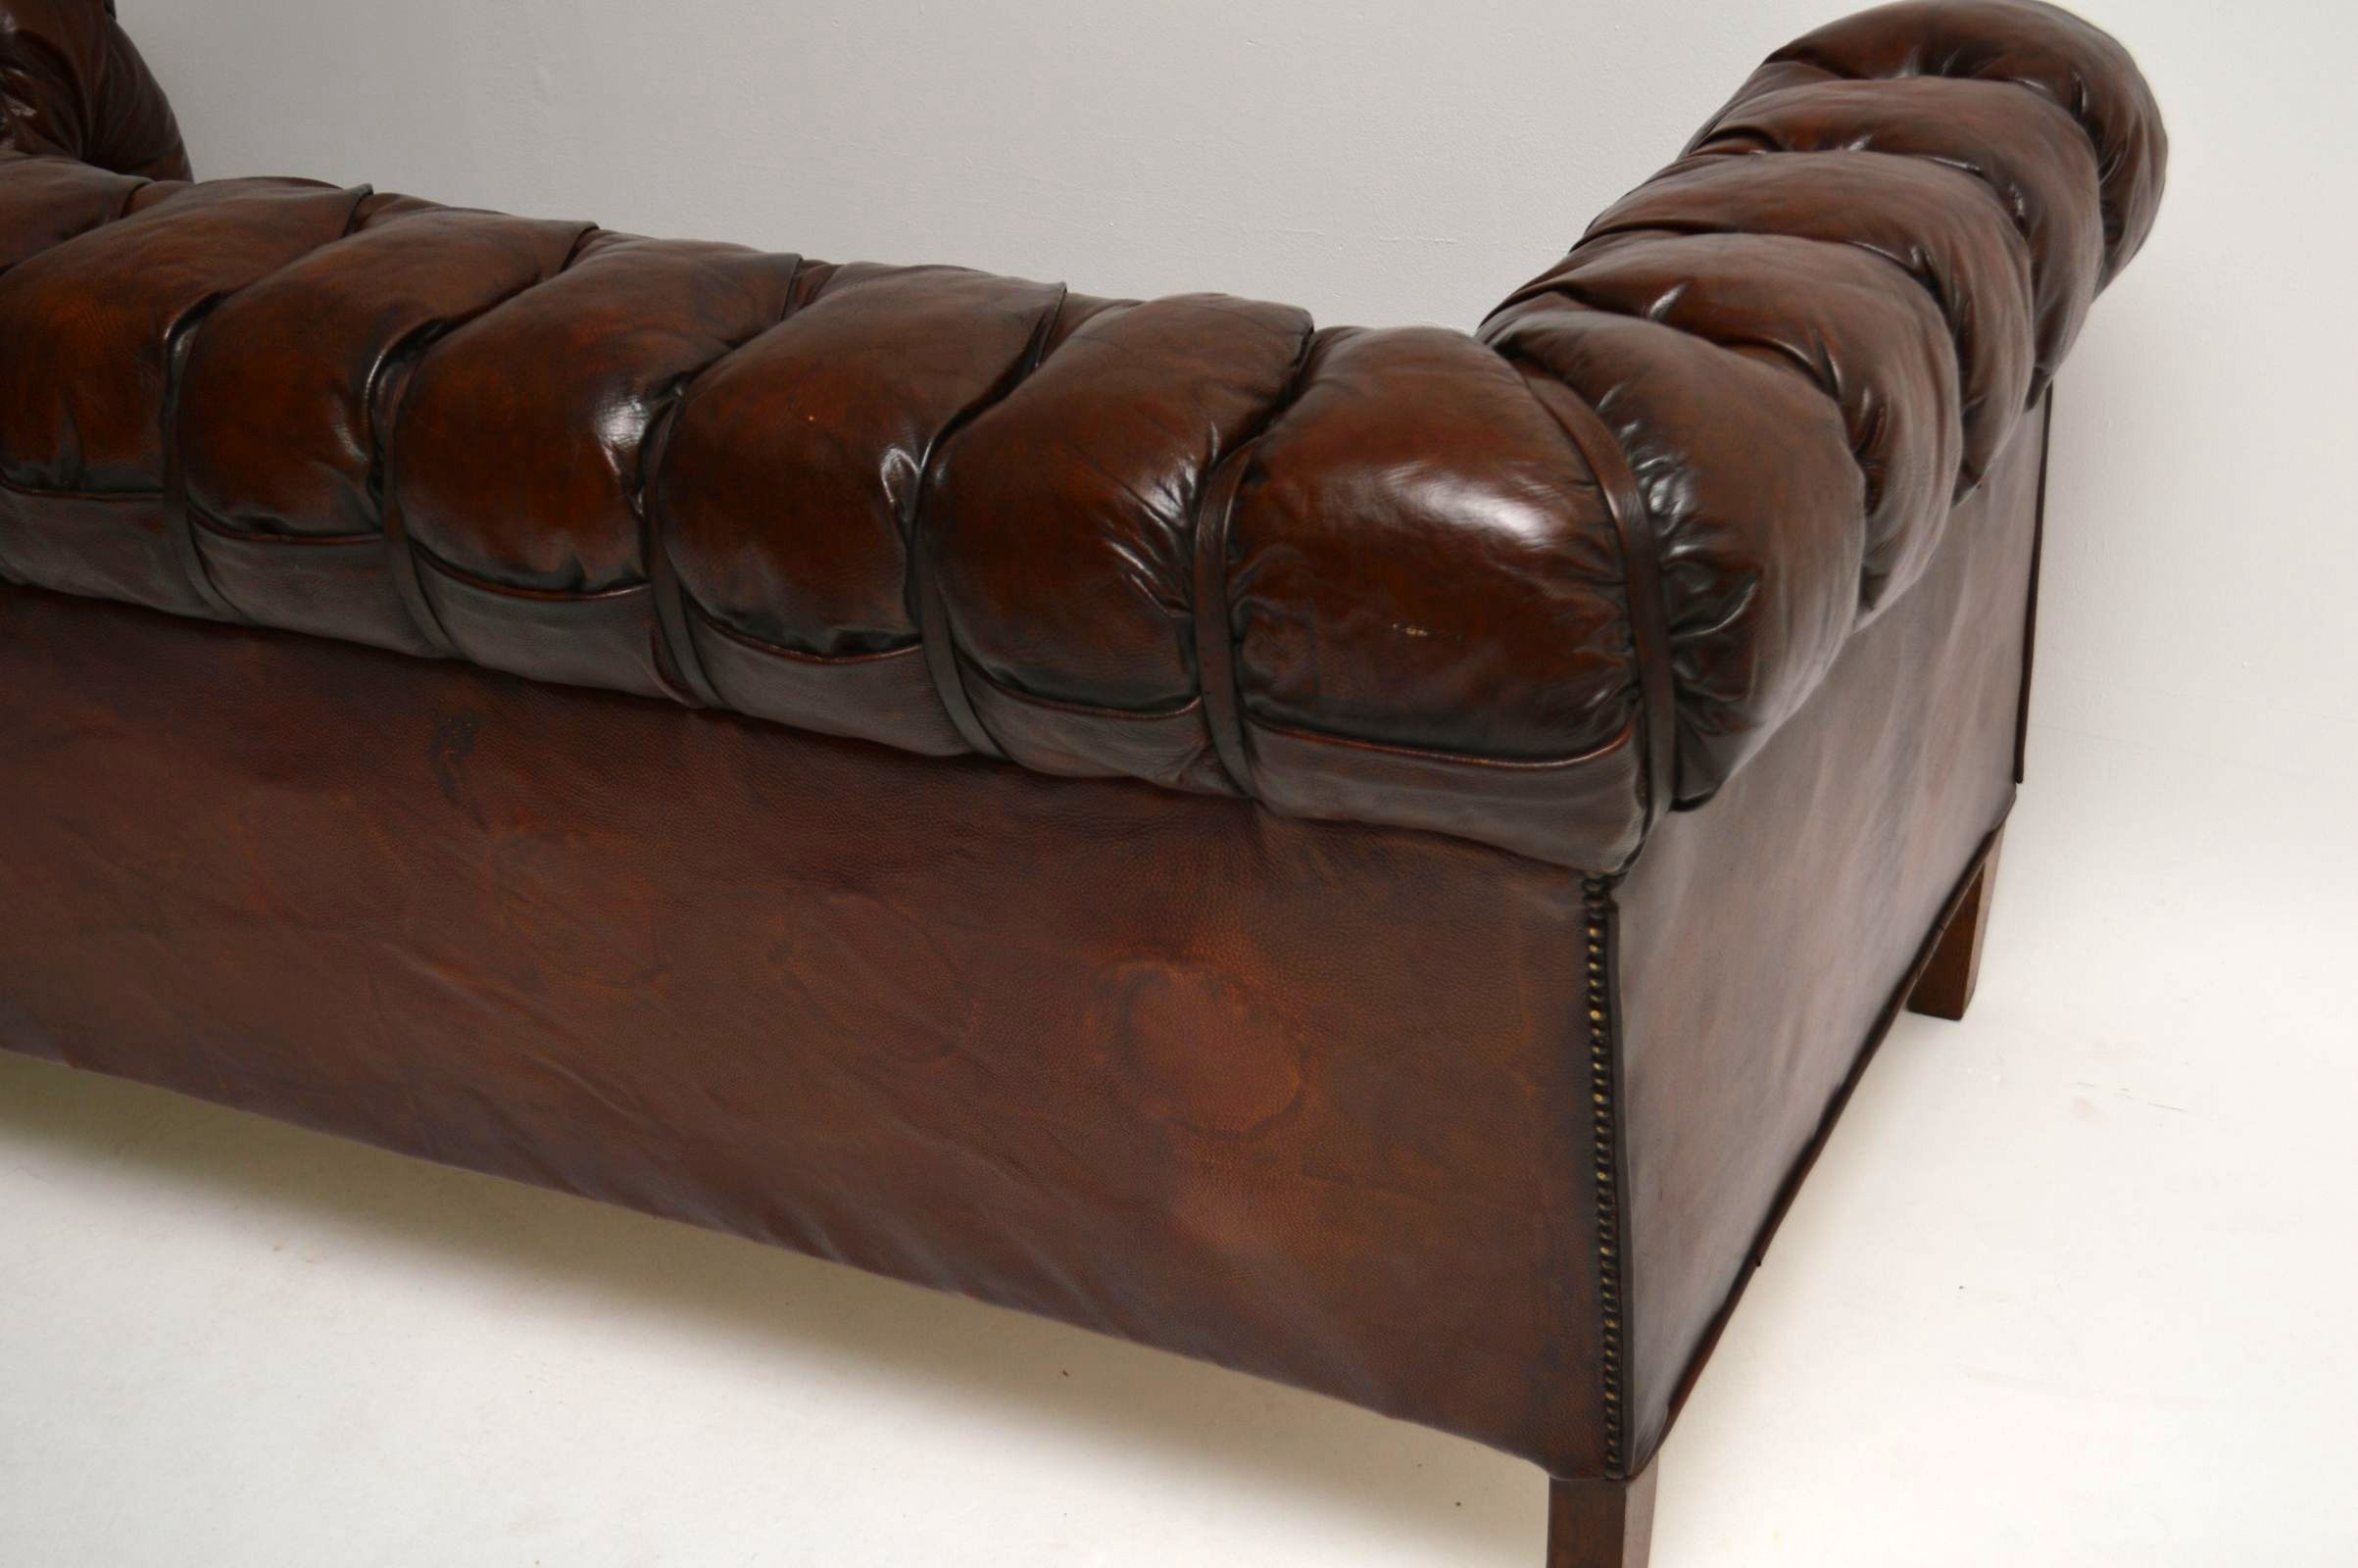 leather chesterfield sofa for sale baby pink cover antique swedish interior